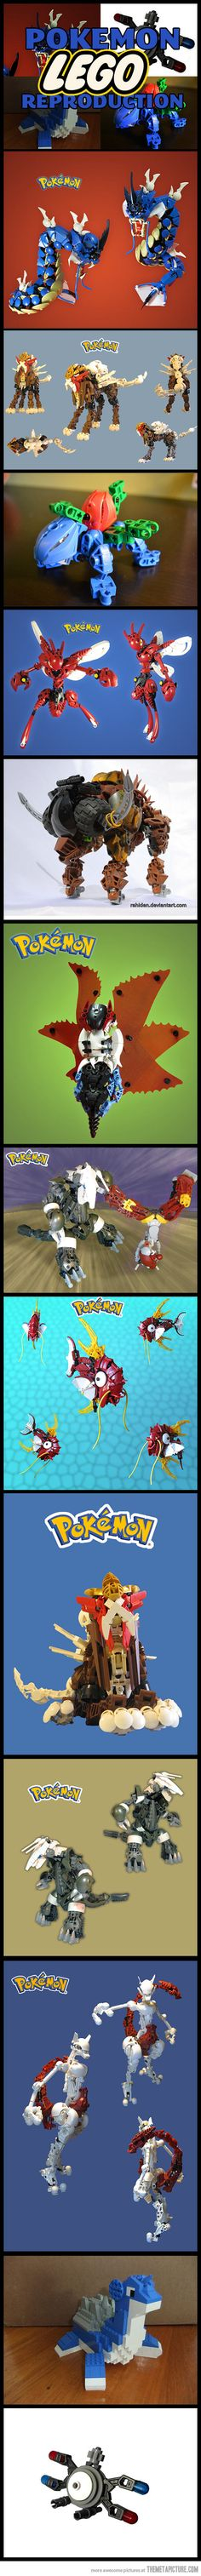 Cool Pokemon Lego reconstructions… @Jacqui Eames you and Joey should make these